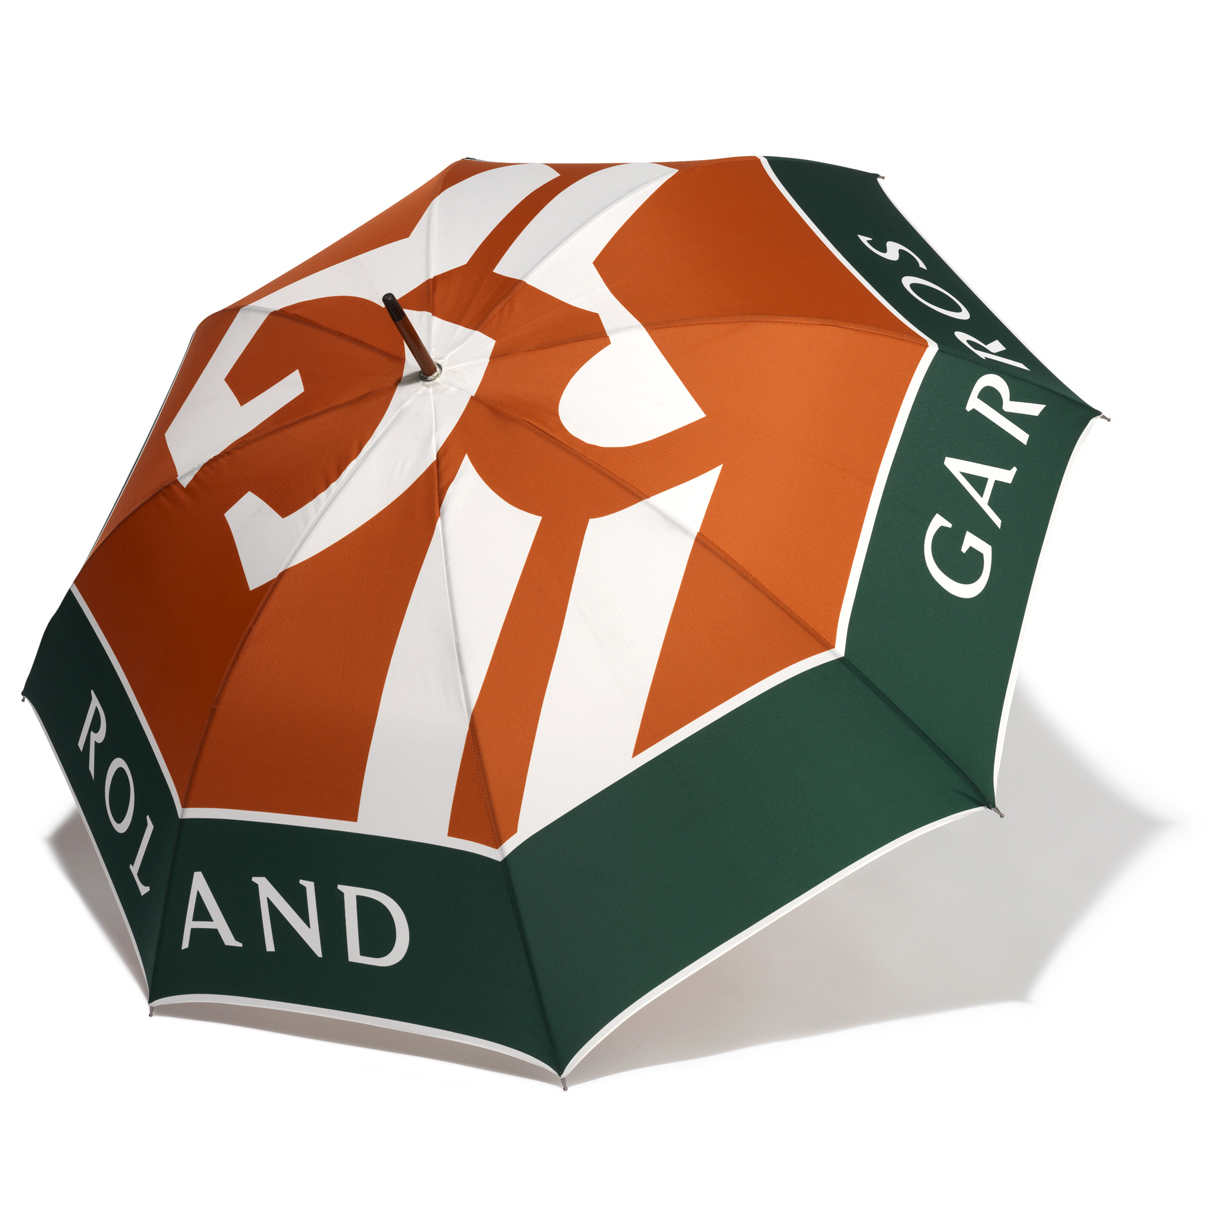 Roland-Garros Large Logo Umbrella -93cm